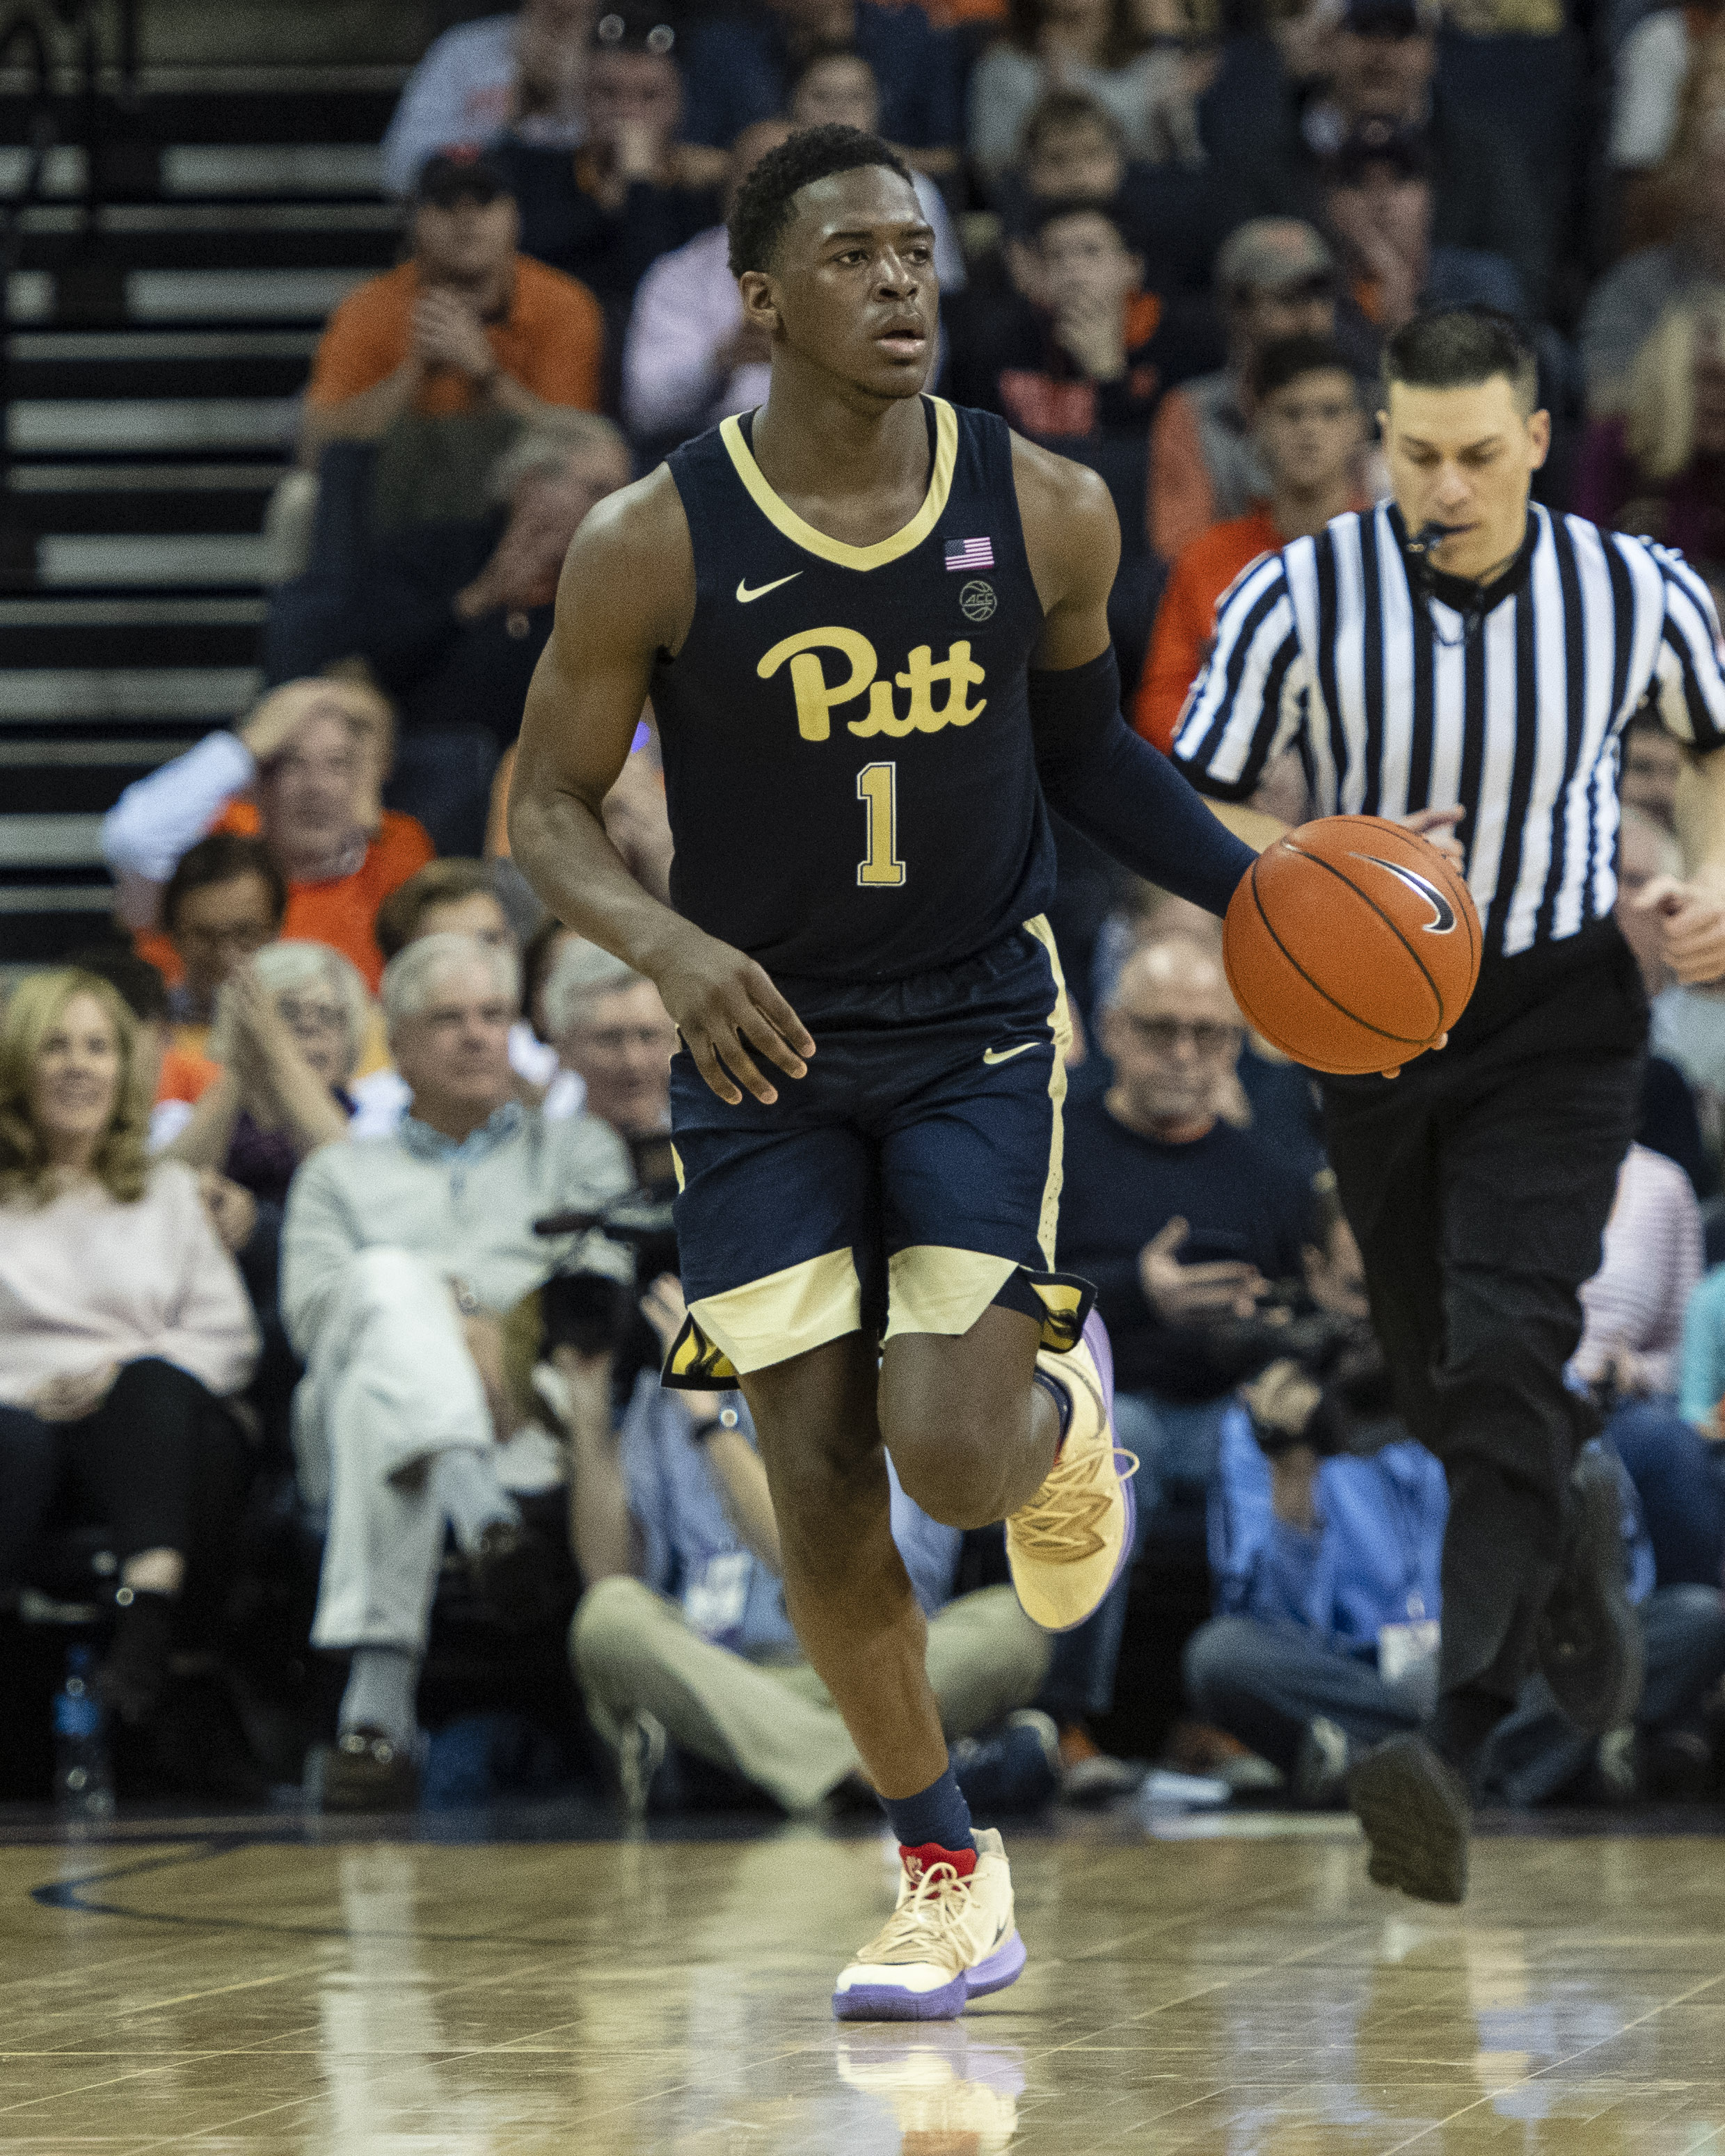 COLLEGE BASKETBALL: MAR 02 Pitt at Virginia